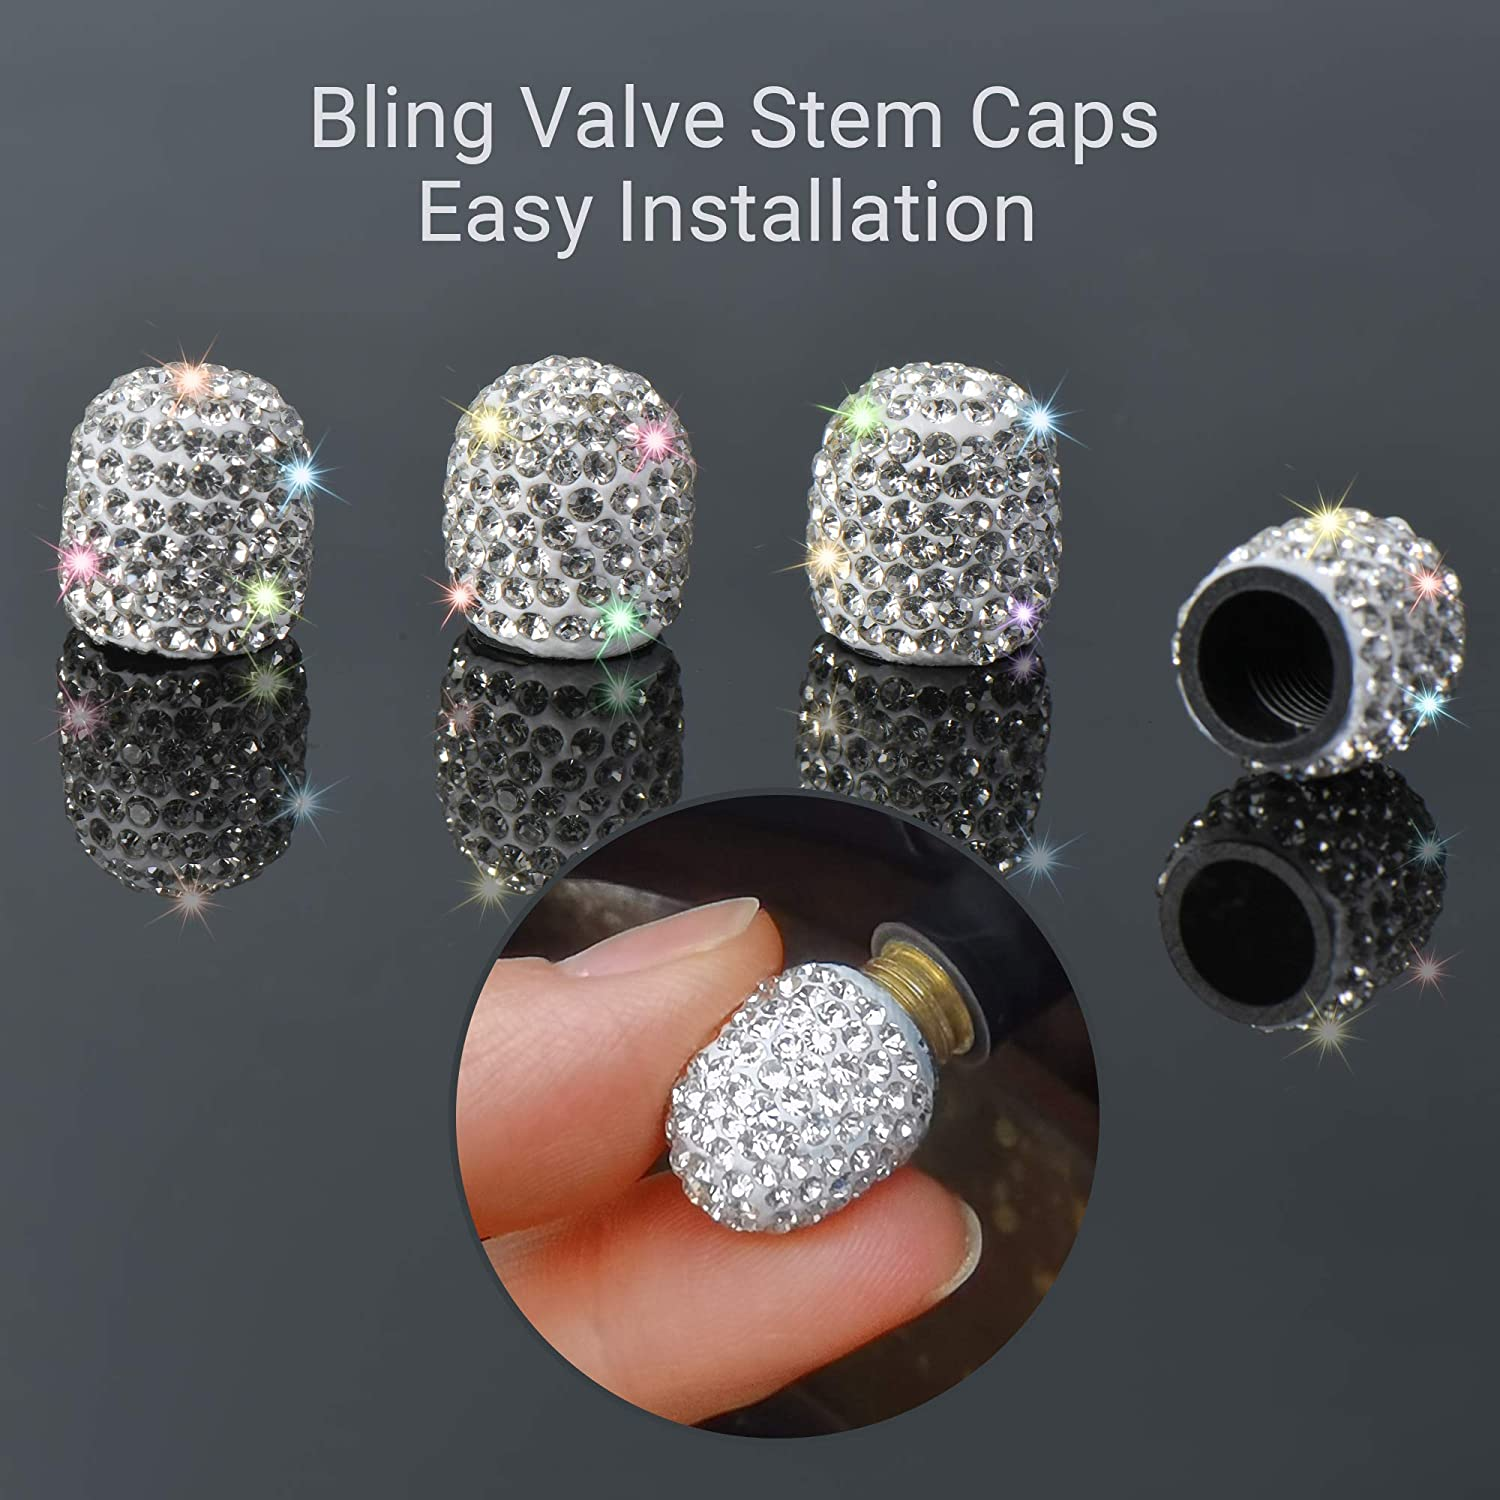 AntBooBoo 4 Pack Bling Tire Valve Caps with 2 PCS Crystal Engine Start Stop Button Ring Girly White Rhinestone Attractive Dustproof Car Tire Valve Caps Chrome Interior Decoration for Girl//Women